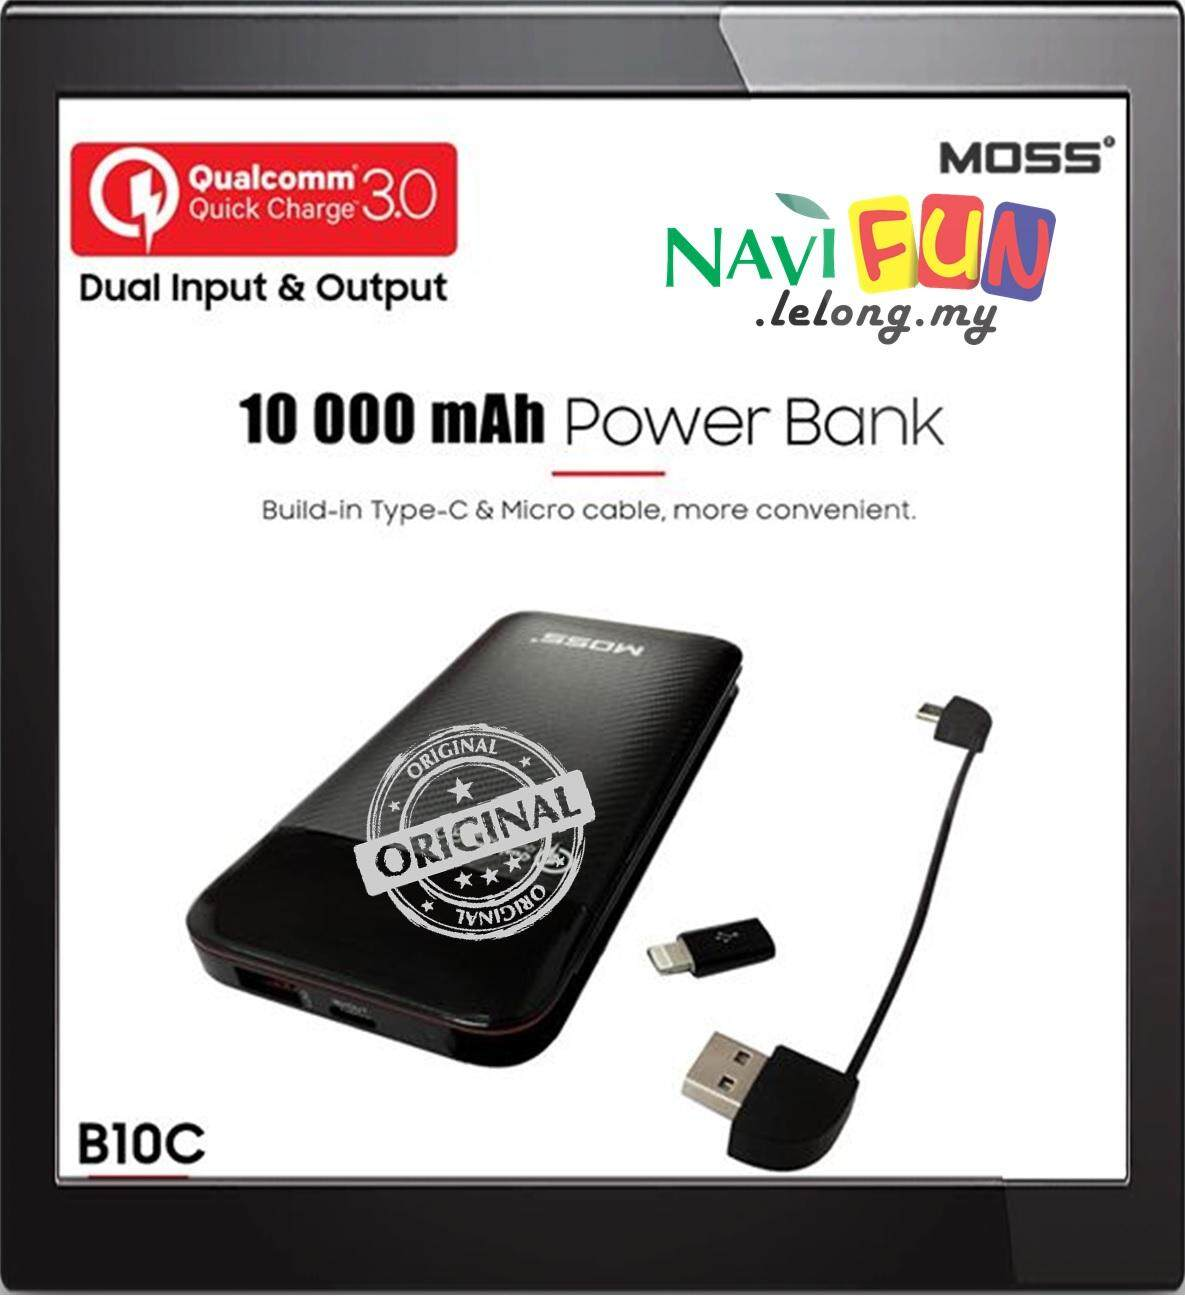 MOSS Quick Charge 3.0 Huawei FCP Power Bank ( 10,000 mAh ) B10C with build in cable [Micro+Micro USB to Lightning converter]